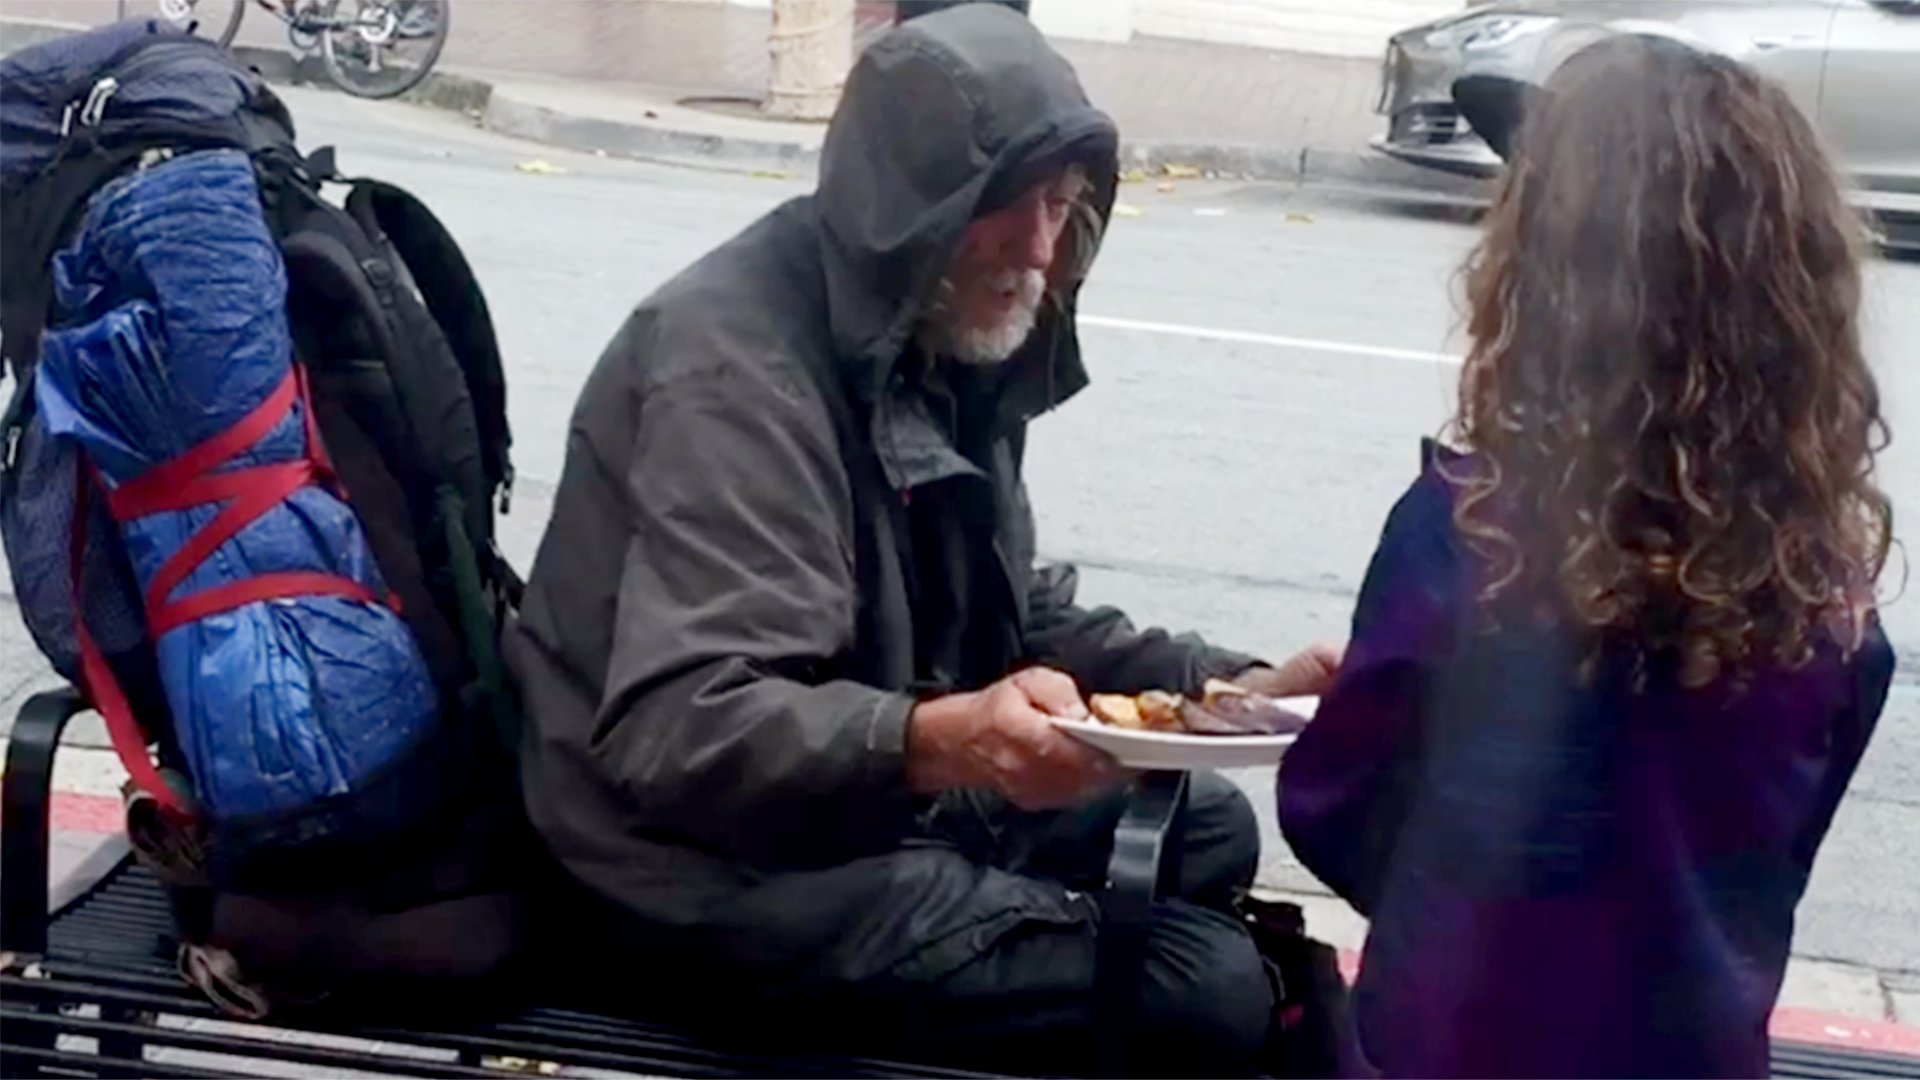 8 year old girl gives her meal to homeless man and